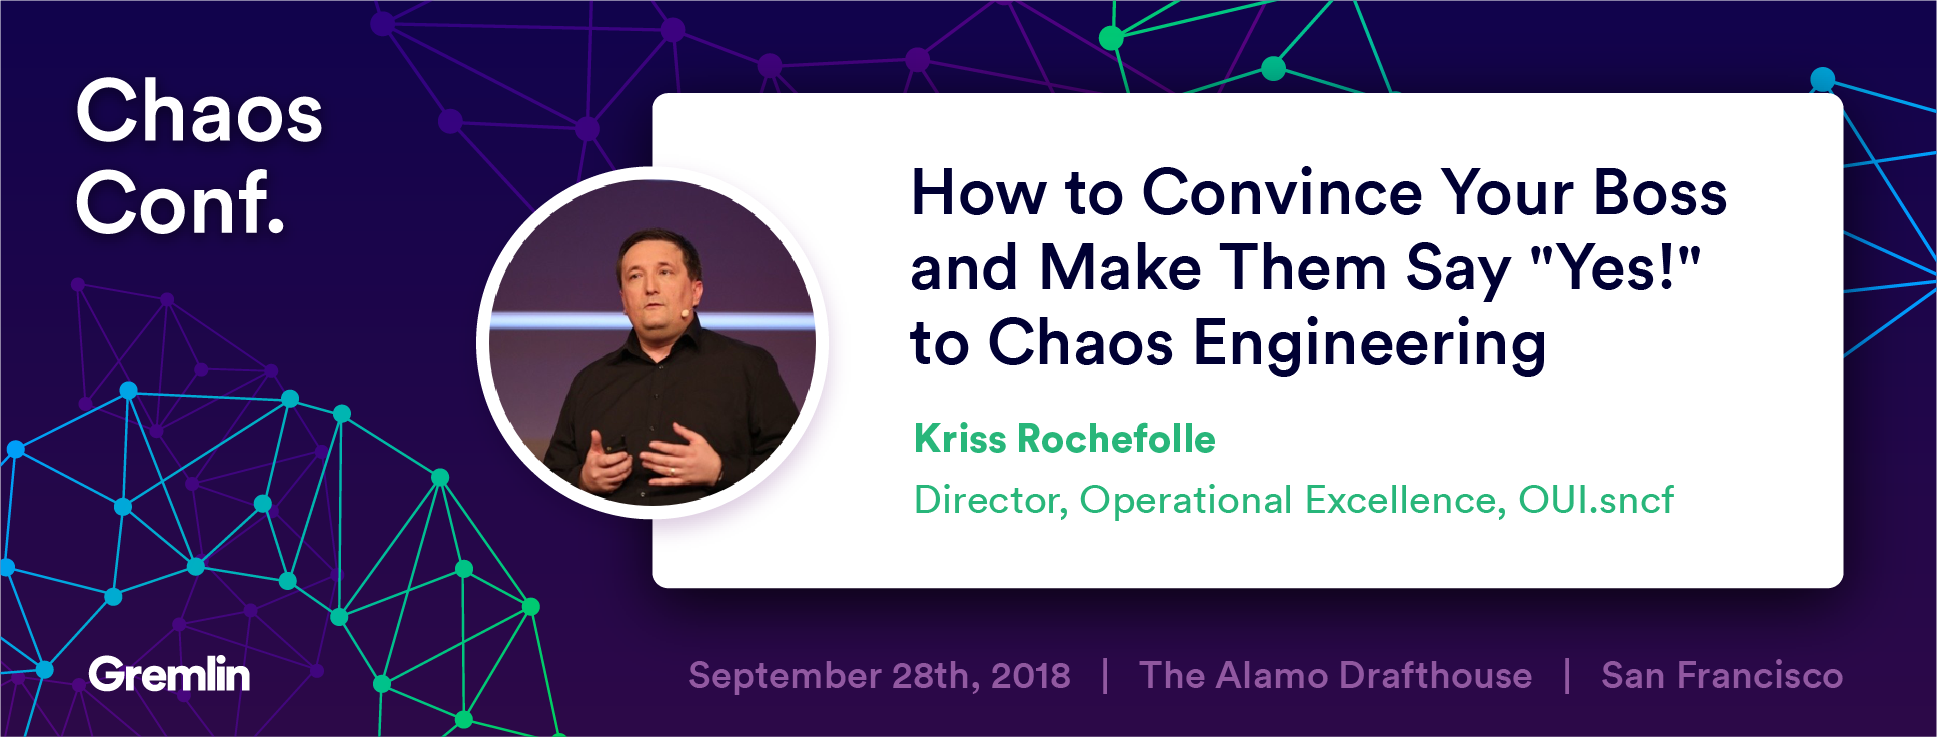 """Kriss Rochefolle: """"How to Convince Your Boss to Say """"Yes!"""" to Chaos Engineering"""" - Chaos Conf 2018"""